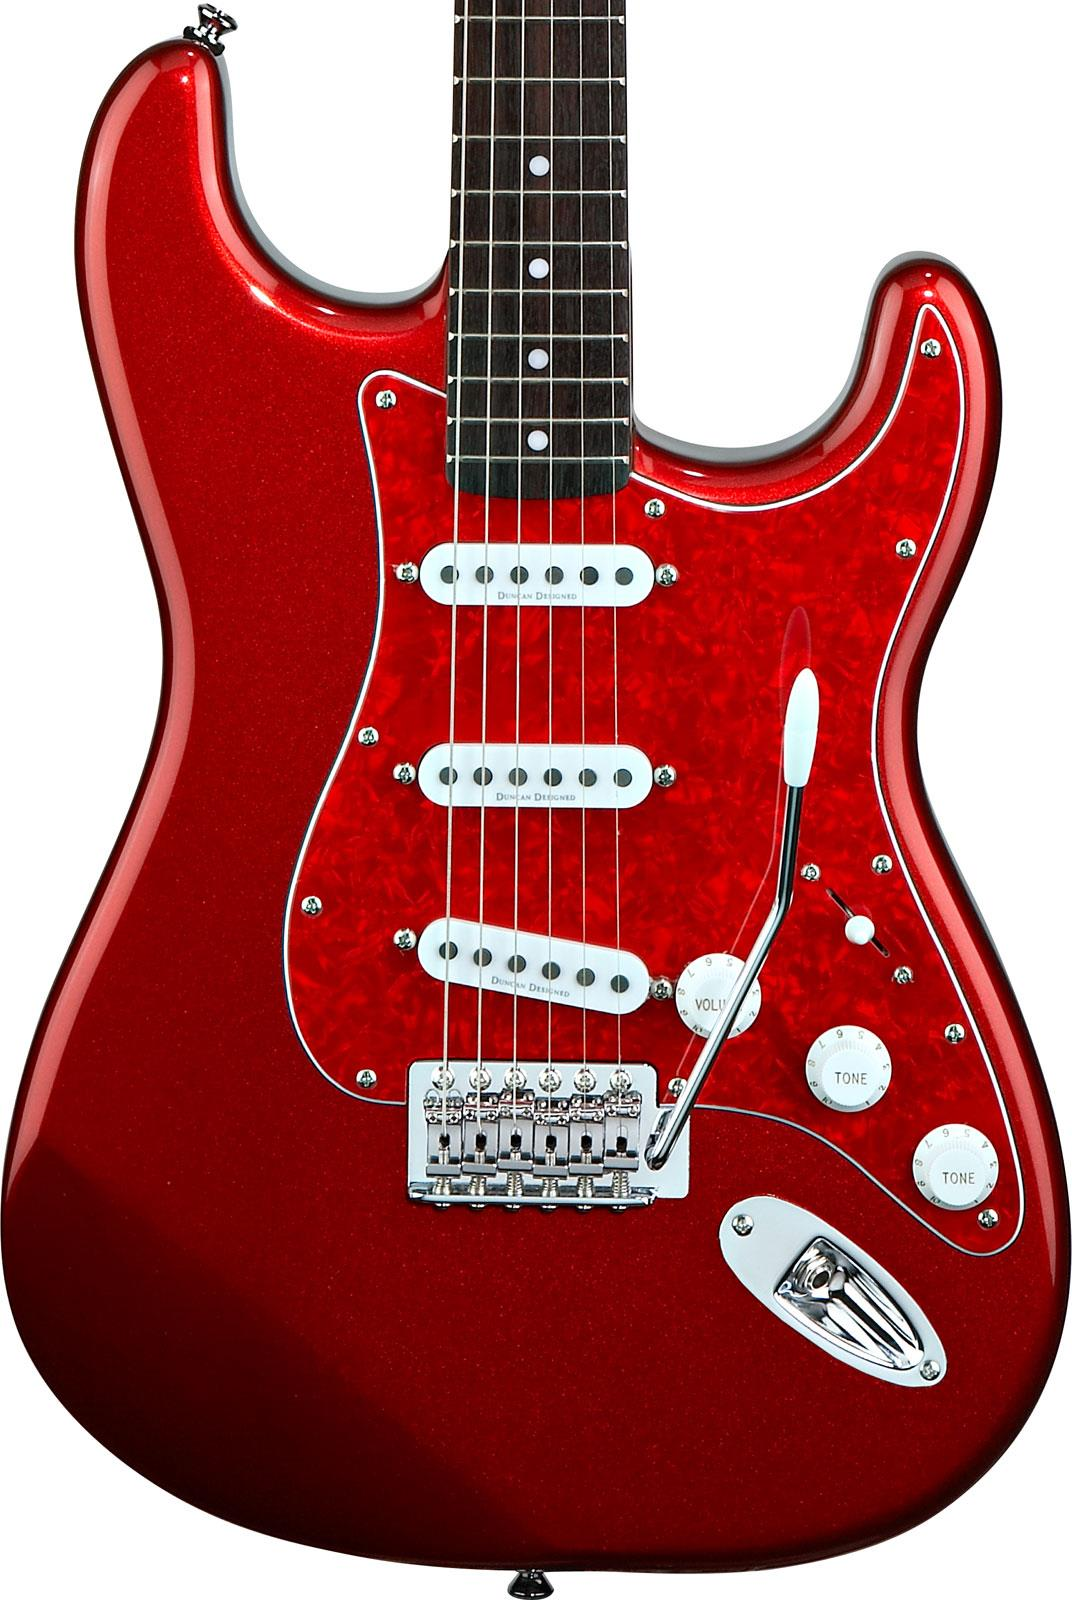 Fender Stratocaster Neck >> Squier Vintage Modified Stratocaster Metallic Red Rosewood ...